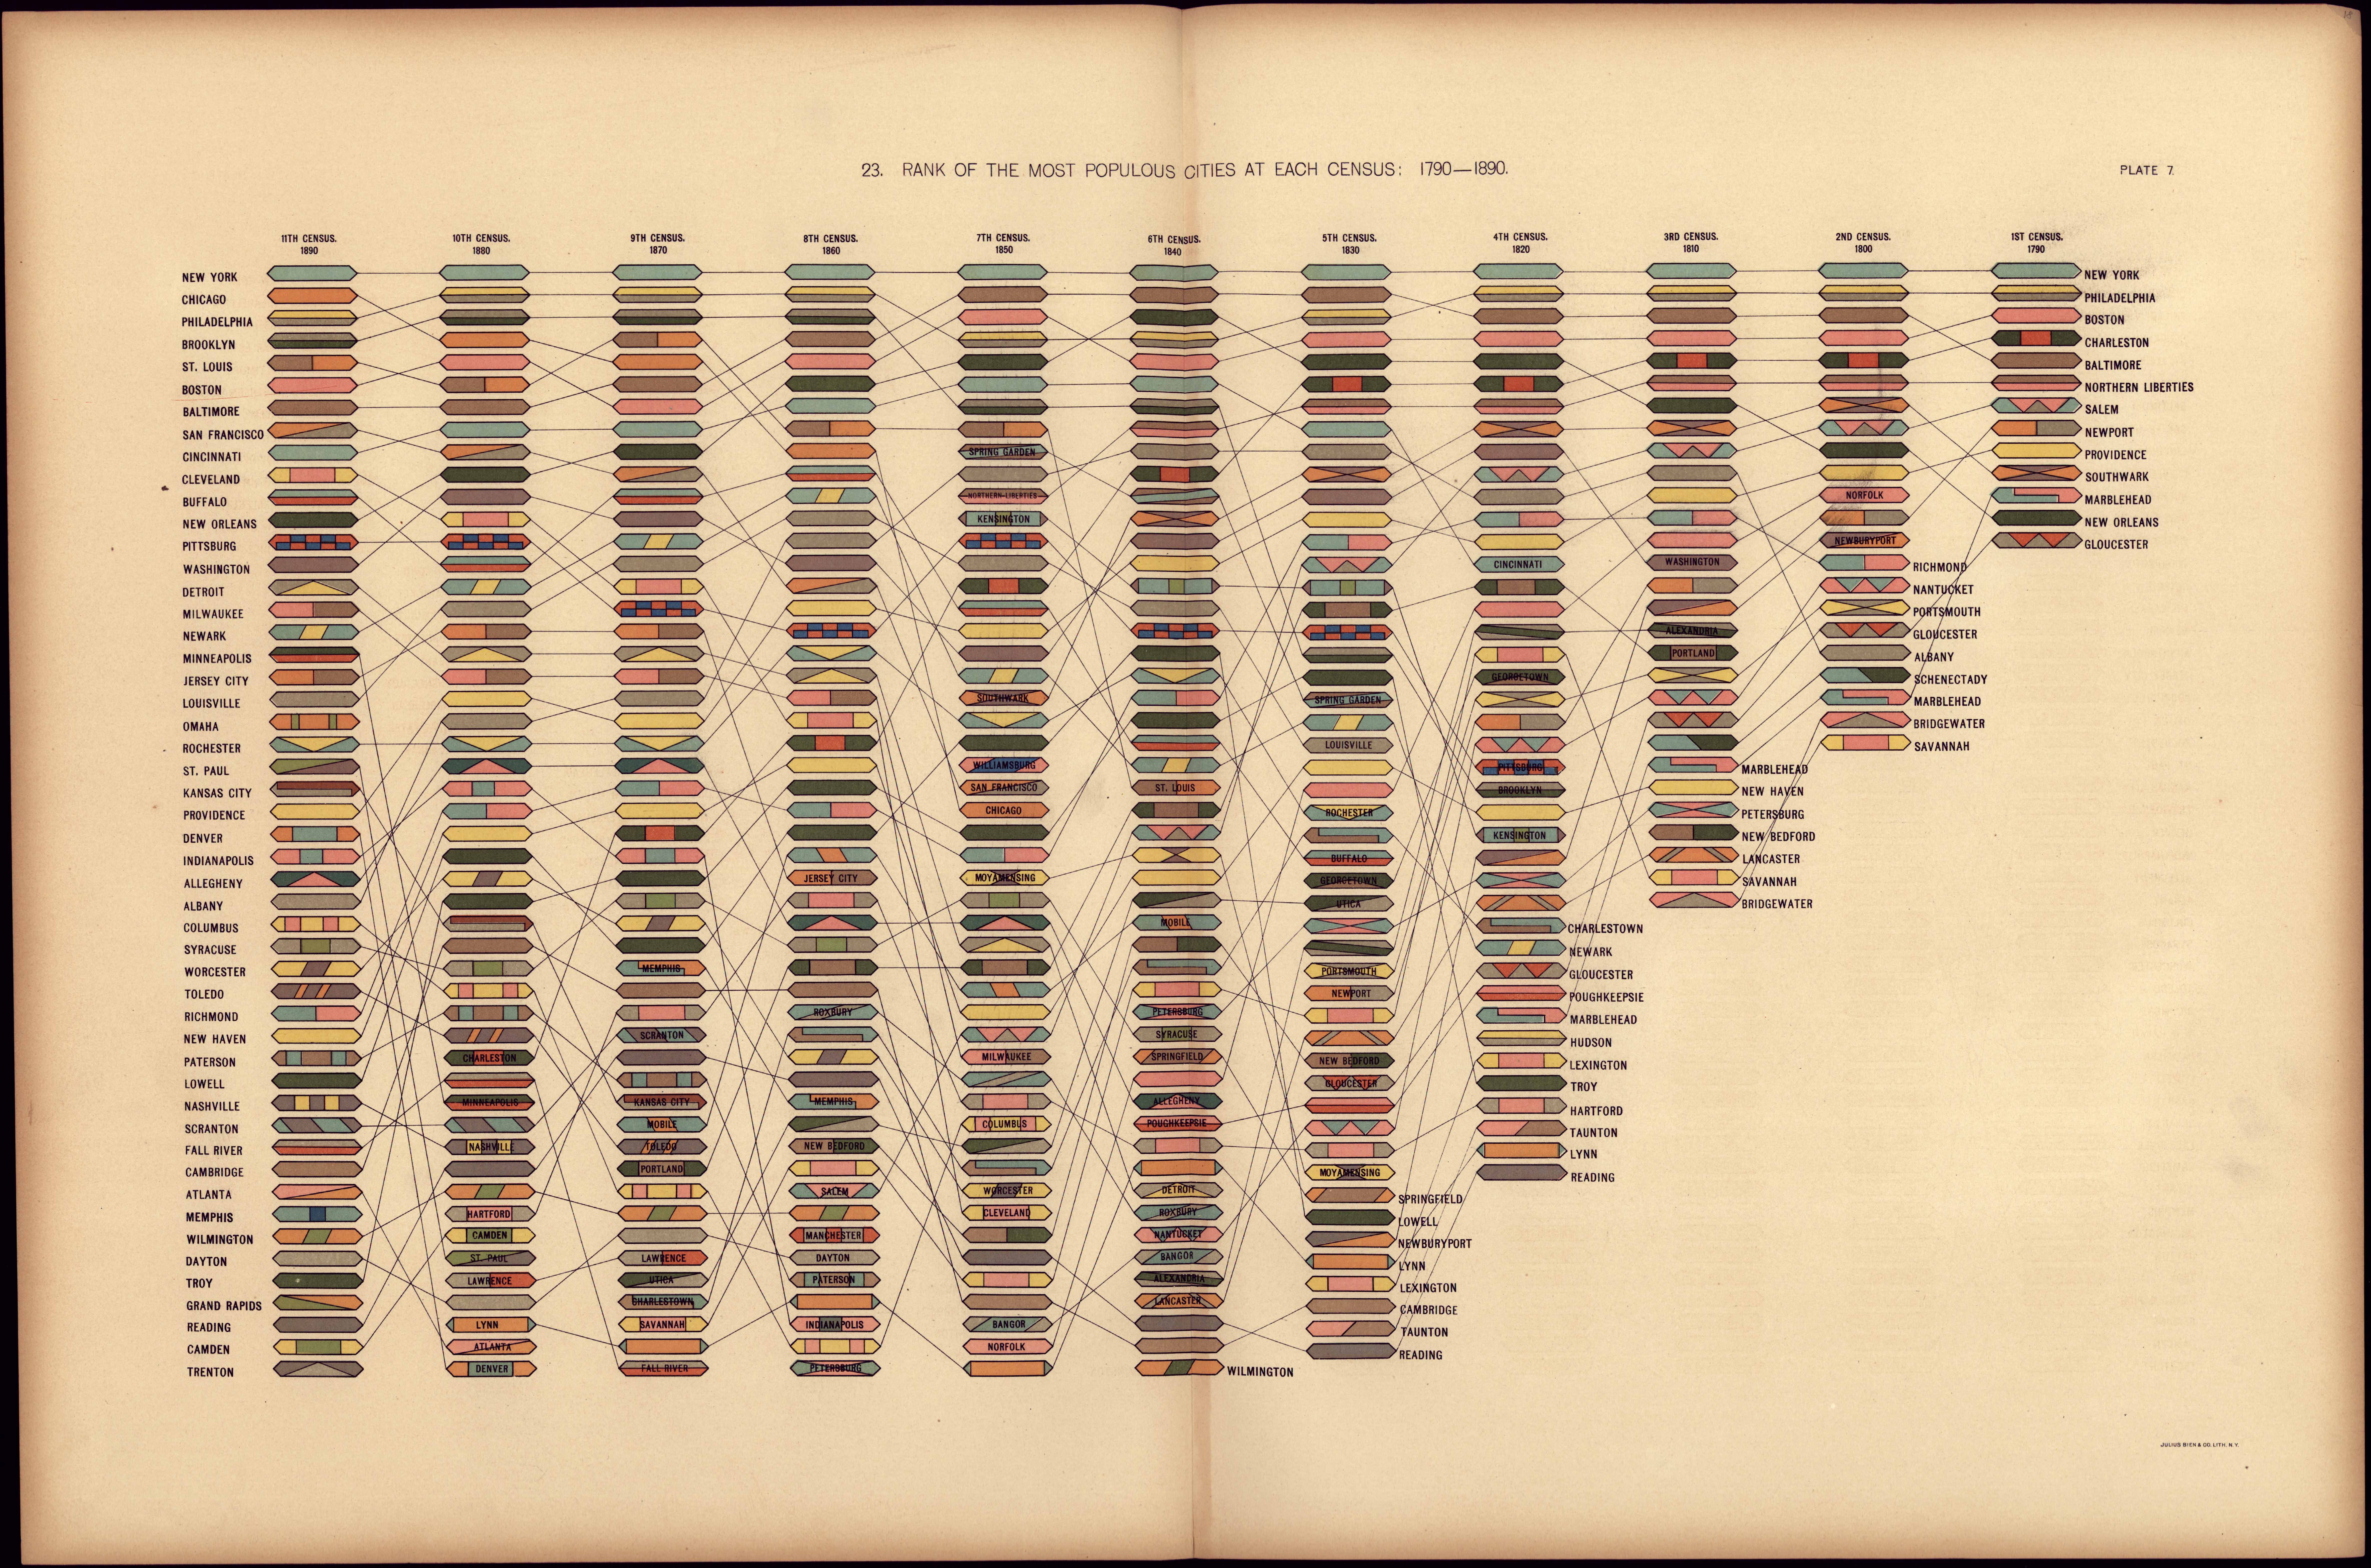 Rank of the most populous cities at each census: 1790-1890 visualized through a tree map.